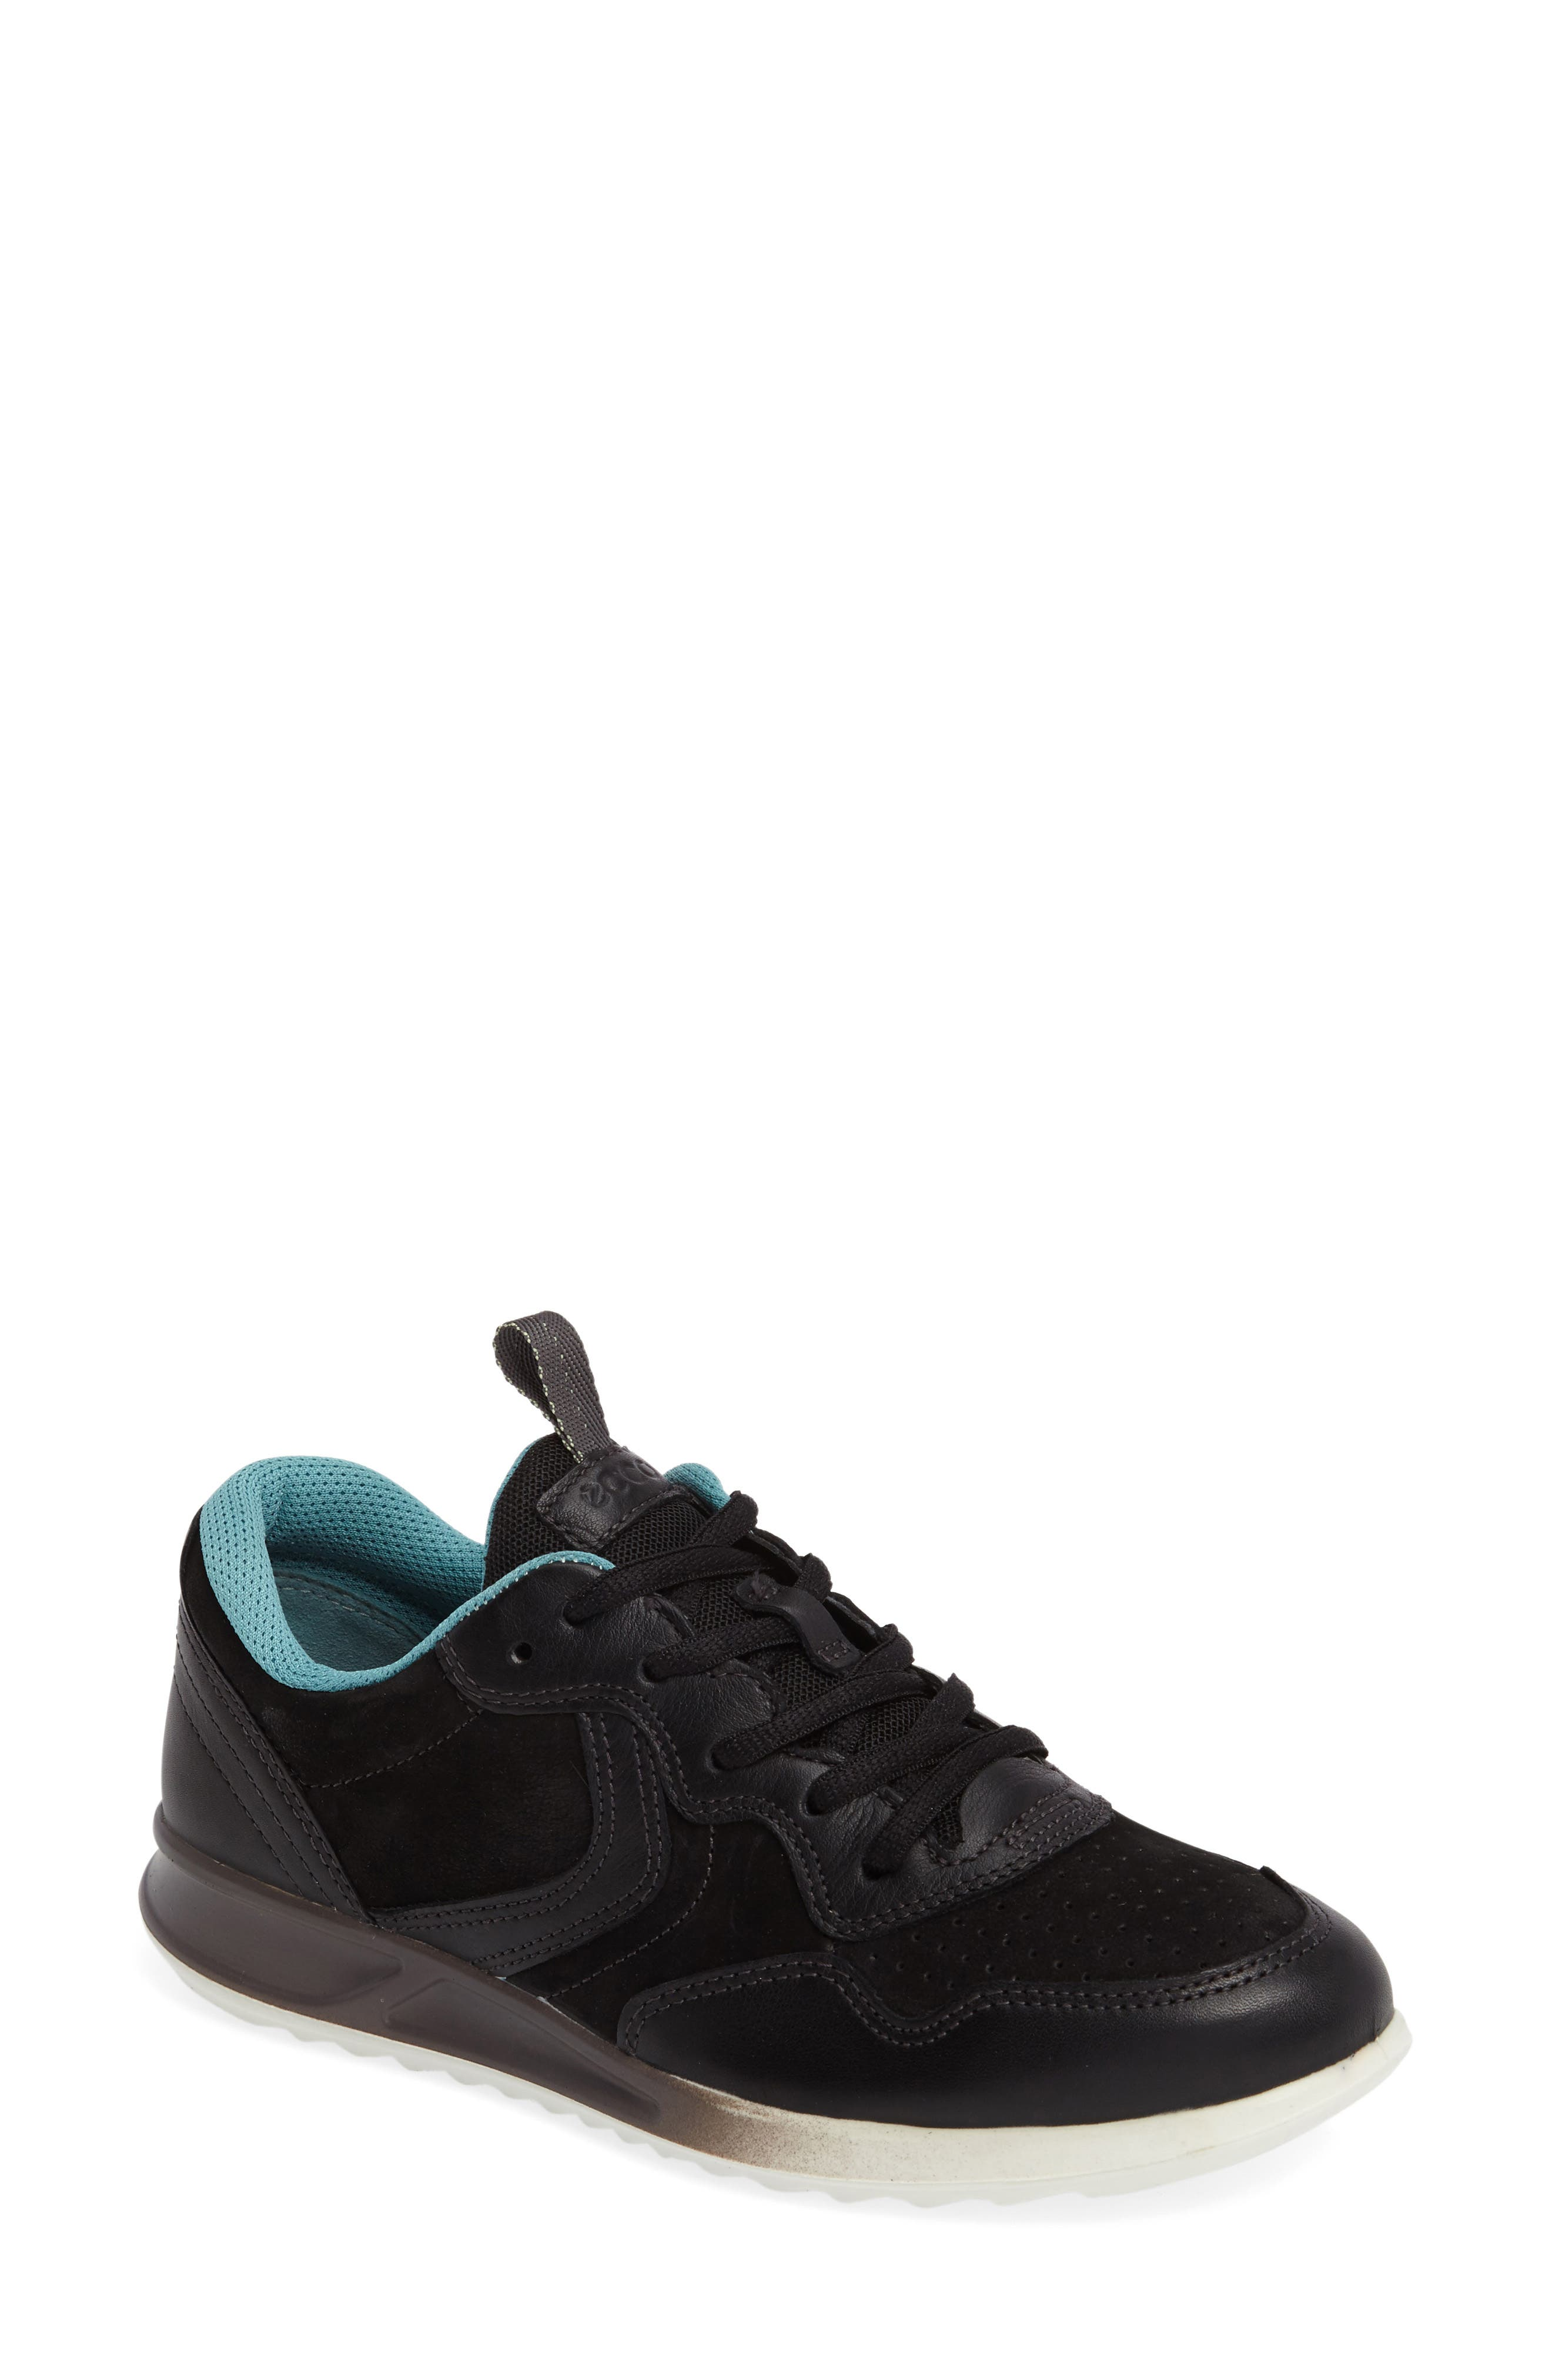 Genna Sneaker,                             Main thumbnail 1, color,                             001